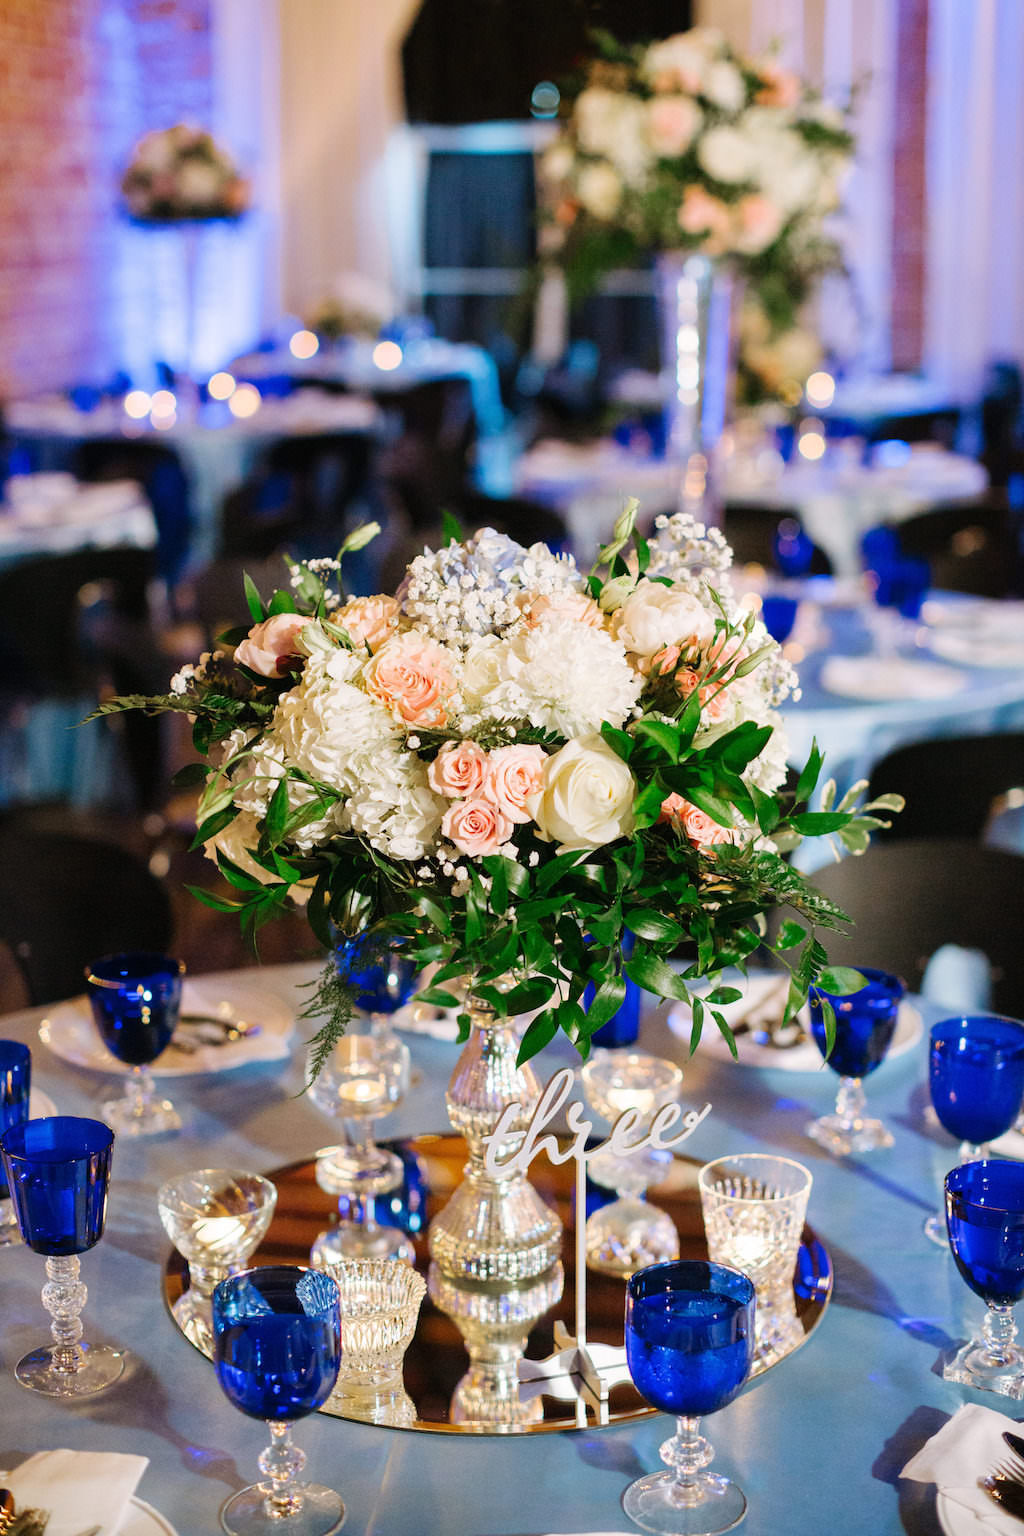 Modern, Romantic Reception and Wedding Decor, Low Floral Centerpieces with White, Peach, Pink, Ivory Flowers, Round Tables with Silver Tablecloths, Blue Stemware | Tampa Bay Premier Wedding Venue NOVA 535 in Downtown St. Pete